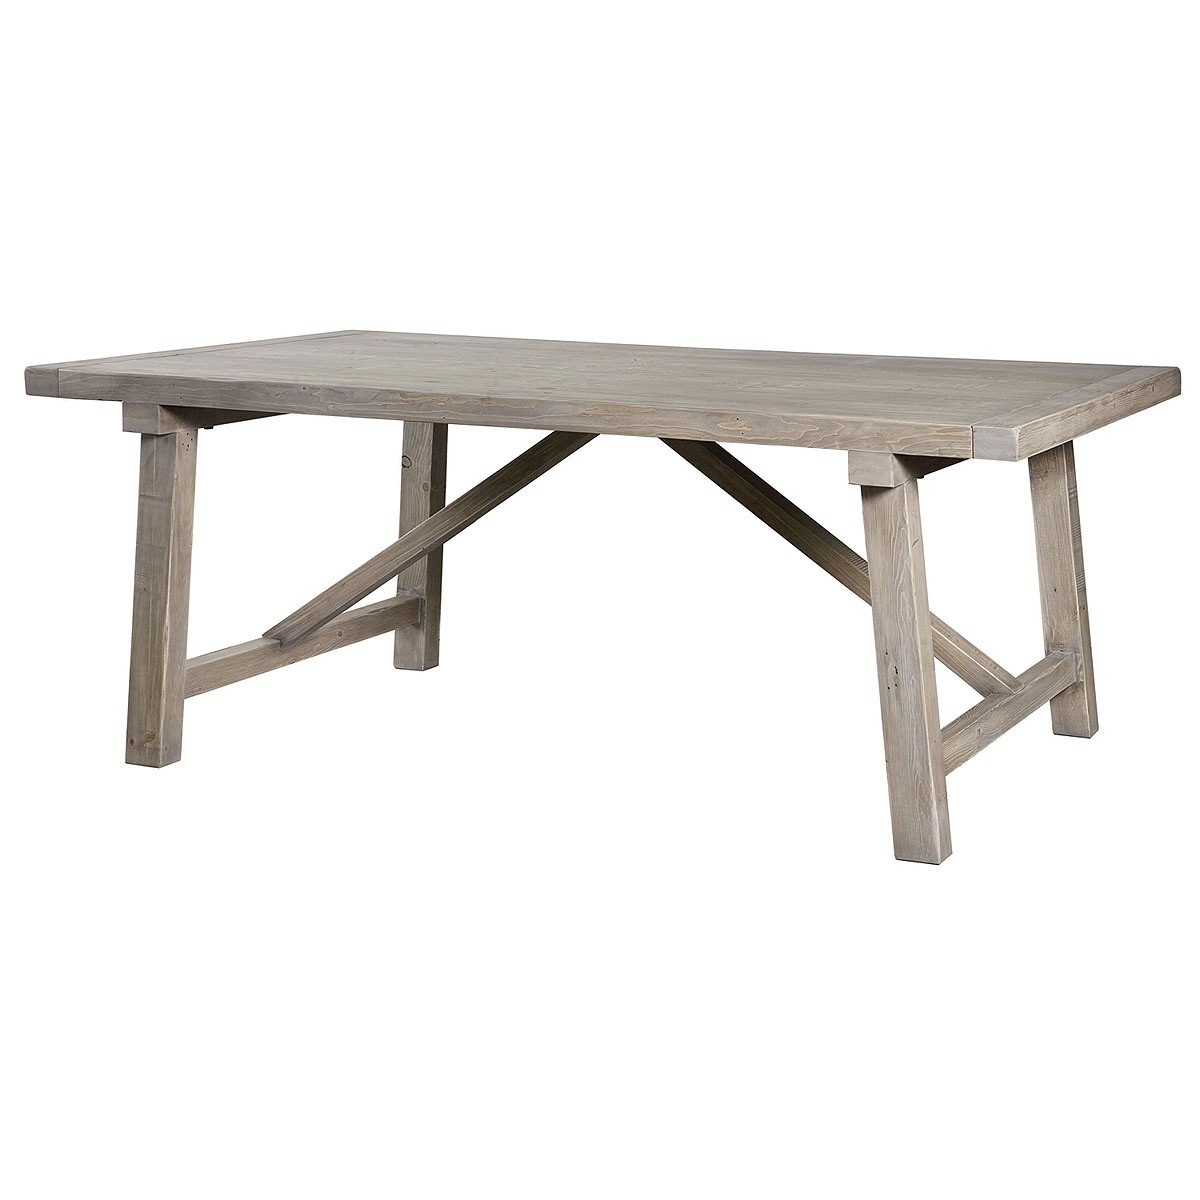 Farmhouse Reclaimed Wood Dining Table Wooden Truss Dining Table 37230